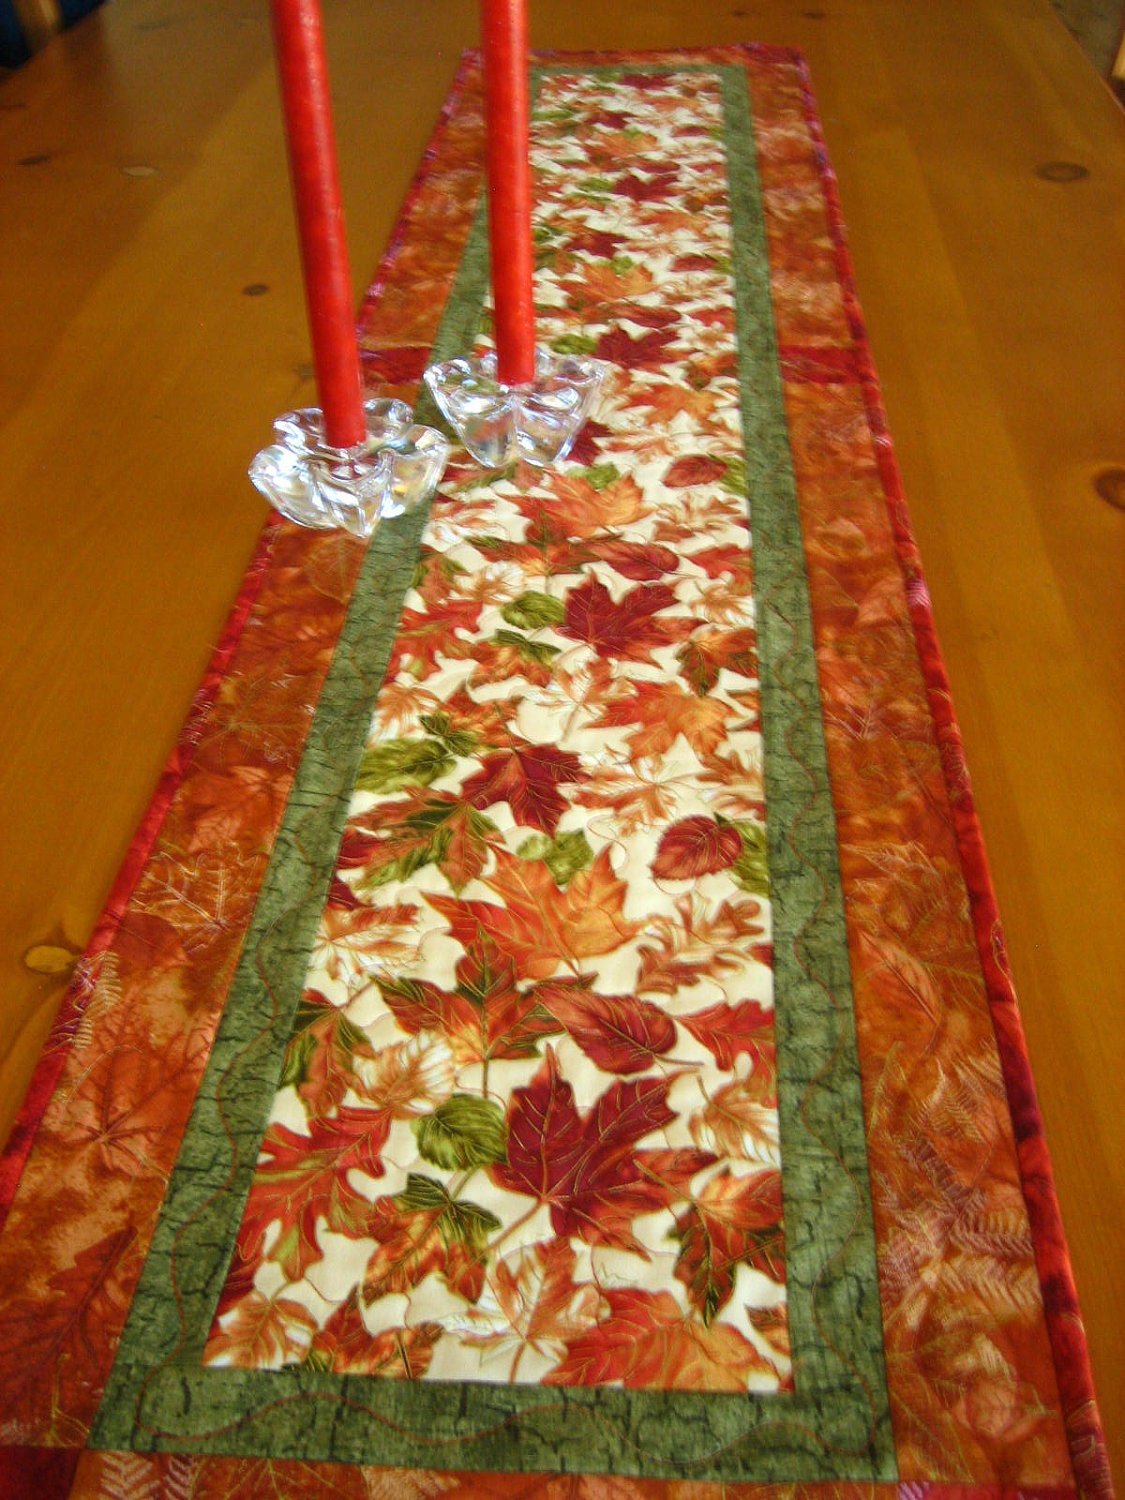 Autumn Blaze Quilted Table Runner By Patchworkmountain On Etsy